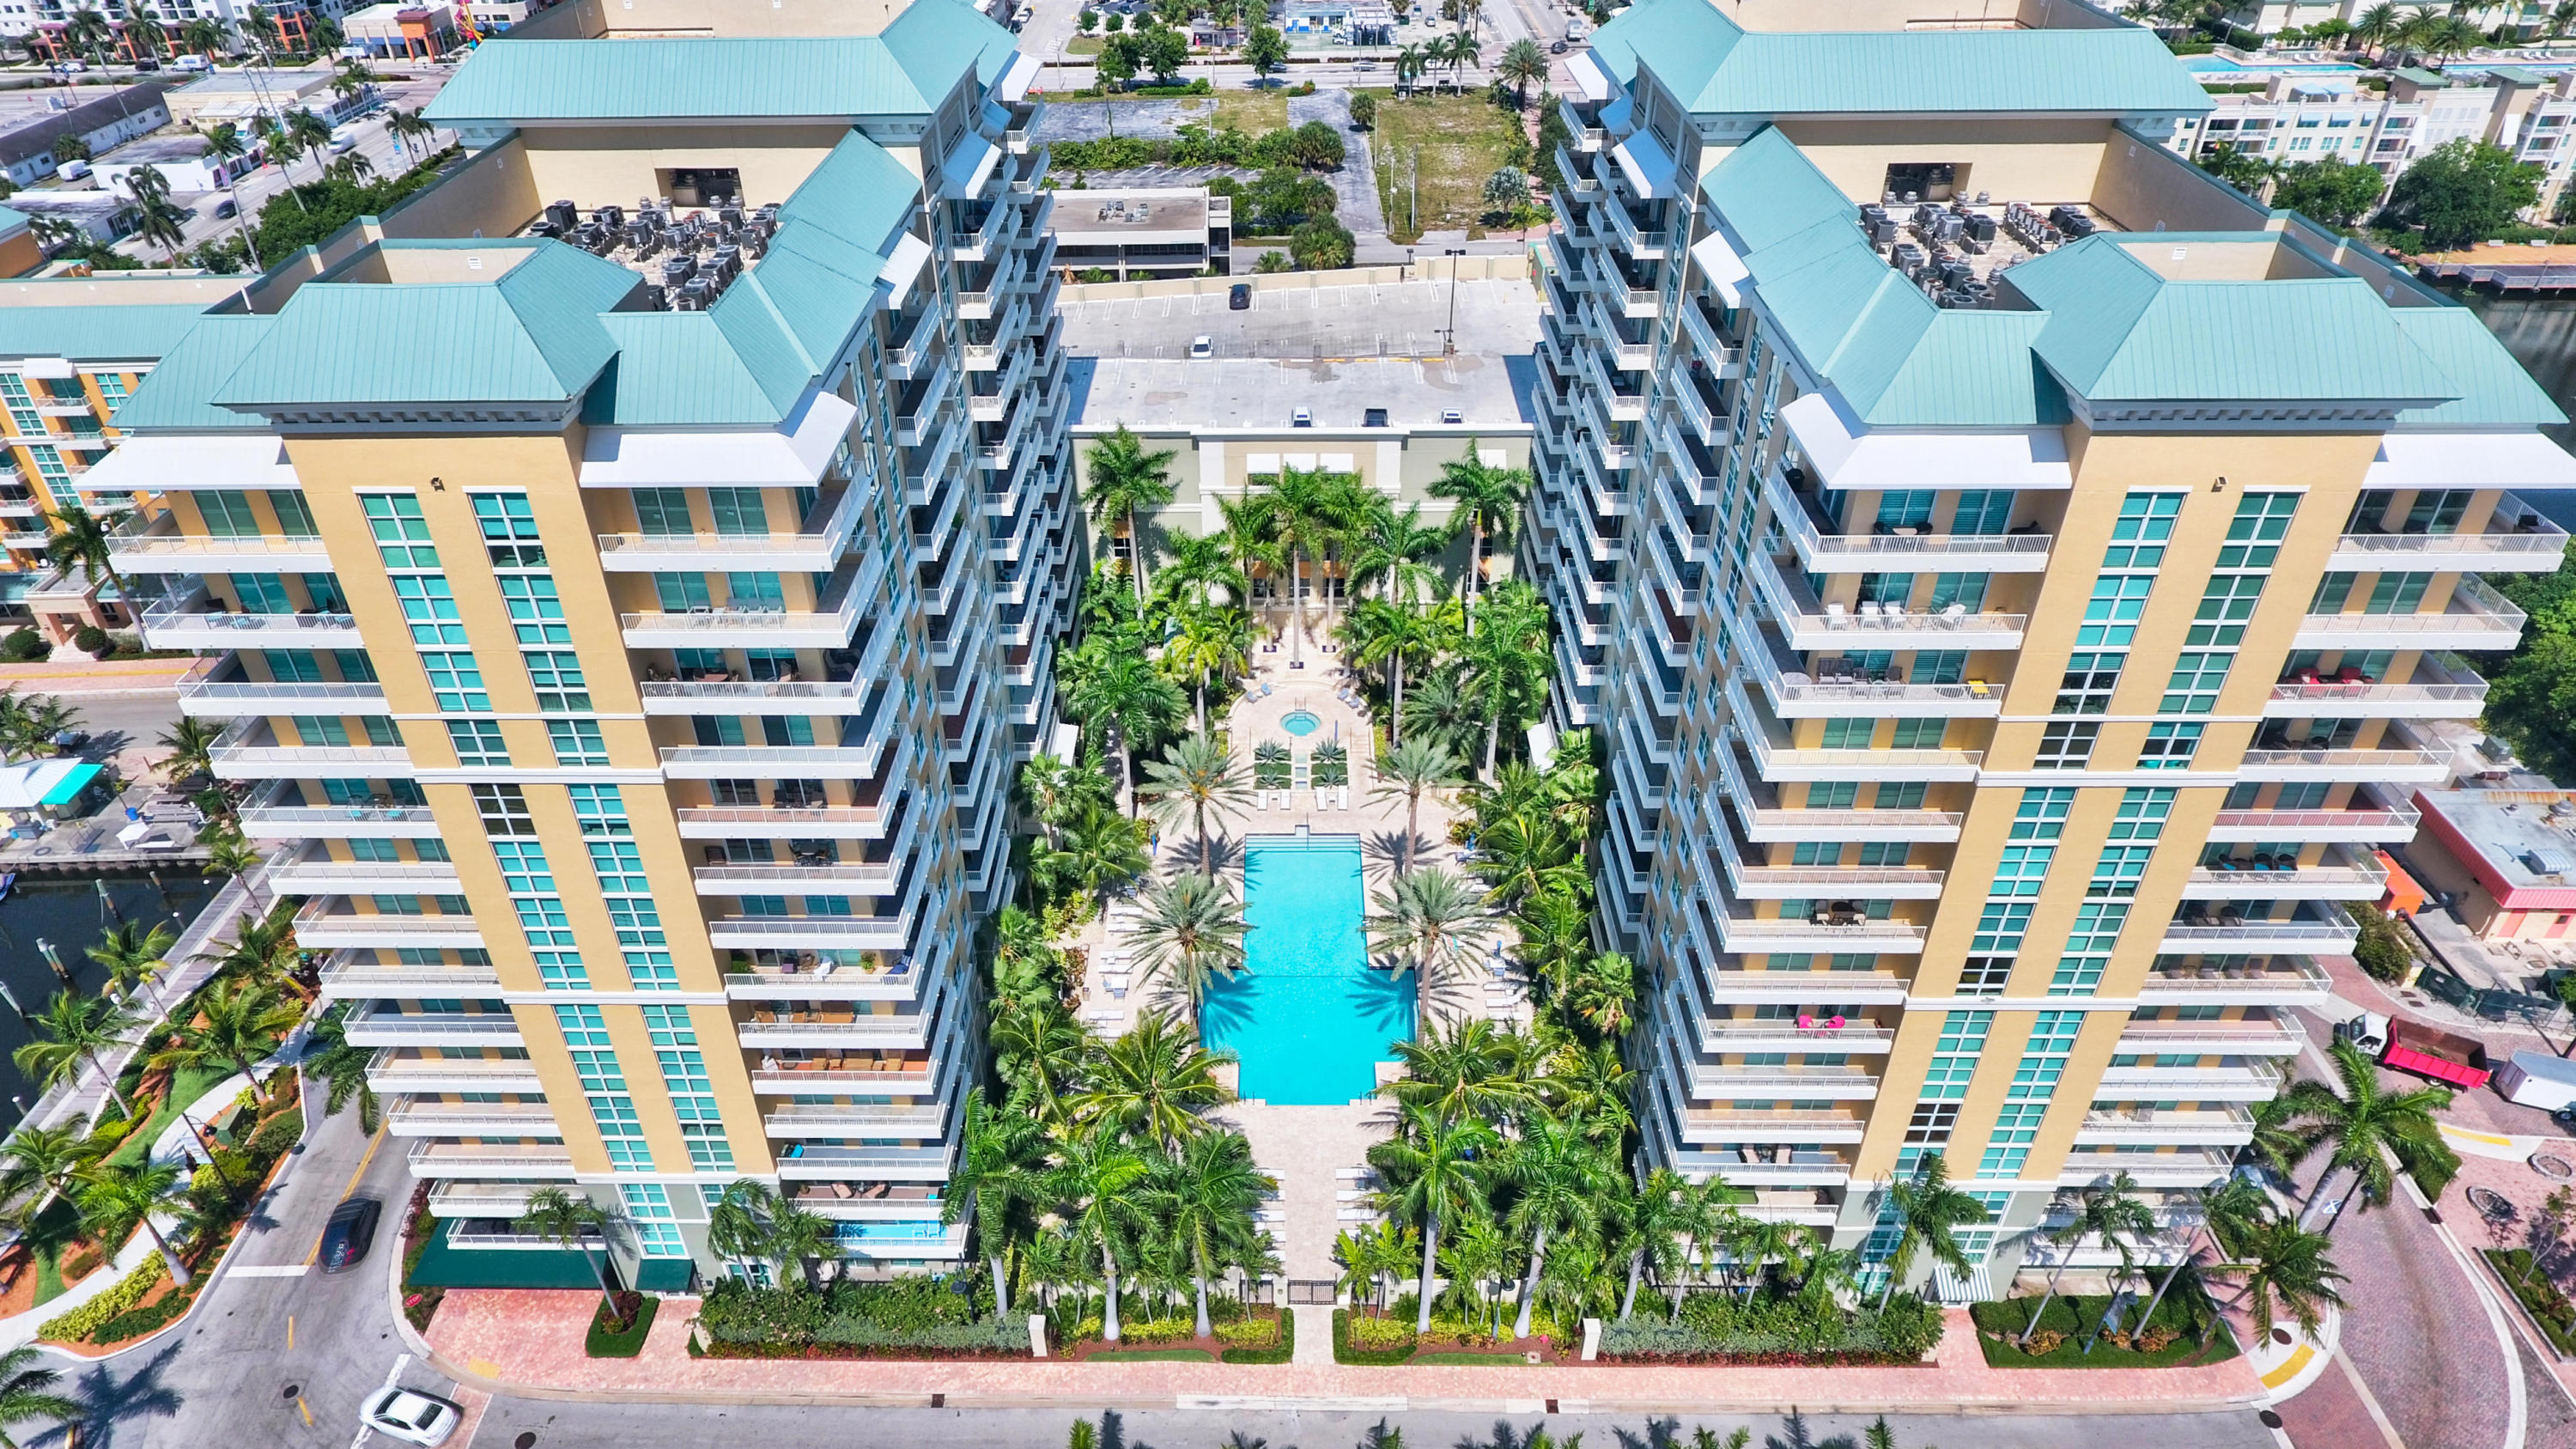 Perfectly maintained one bedroom condo in the Heart of the surrounding Boynton redevelopment. Marble floors throughout. Pool, Intracoastal, Ocean and Marina views. Walk to the Beach. Walk to the Restaurants. Quickly jump on 95 to the airport. About 5 miles to Atlantic Avenue. Monthly fee includes, 24 hour lobby/security doorperson, Resort Style Pool, Fitness Center, Club Room, Movie Theater Room, Digital Cable, WIFI , Water & other amenities. Garage parking space is secured with gated entry. Management staff on site. Rents seasonally at $3100. Short term lease of 30 days allowed. Two dogs allowed up to 35lbs. New AC 2017 - New Water Heater 2019